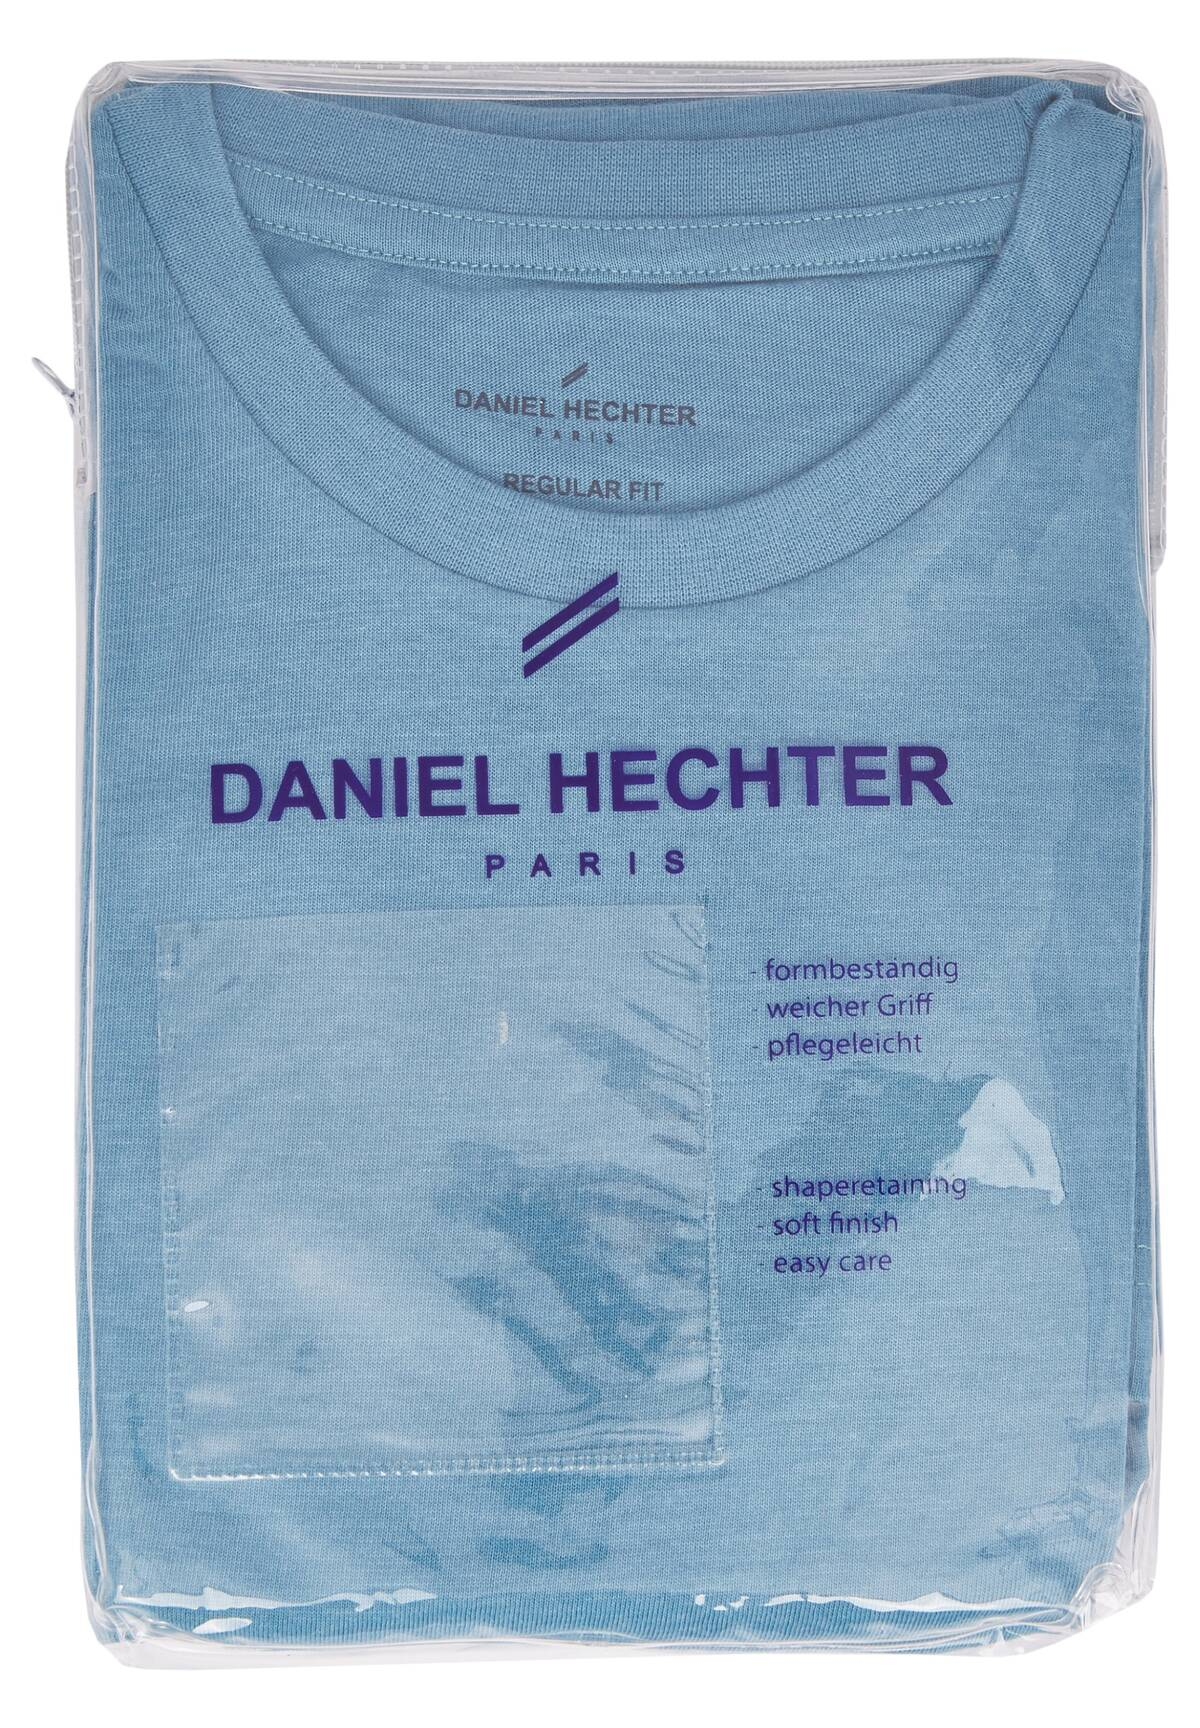 Doppelpack Regular Fit T-Shirt / CREW NECK TSHIRT